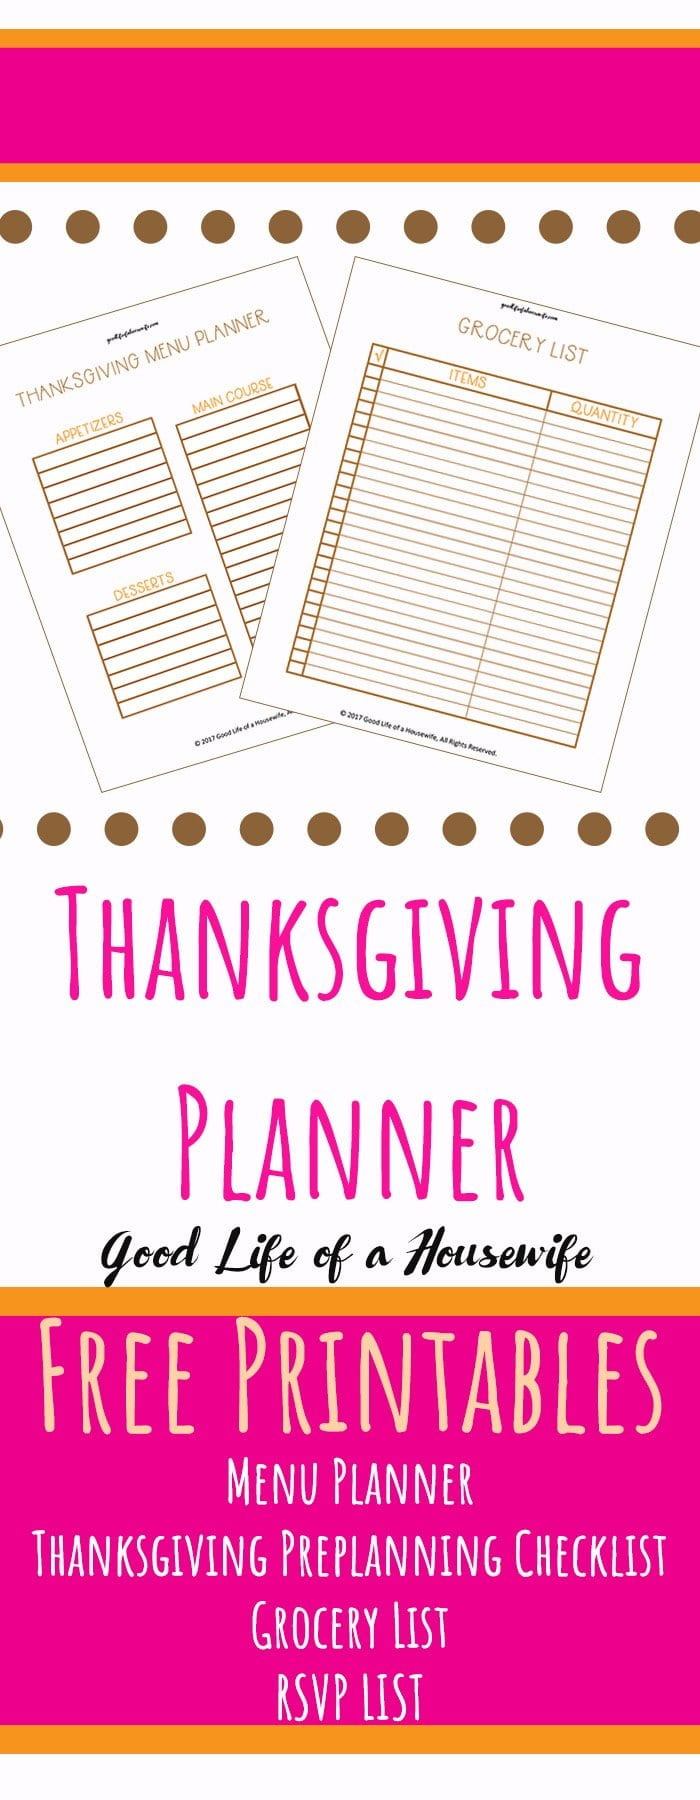 Hosting Thanksgiving this year? Make sure to snag these free Thanksgiving Printables .